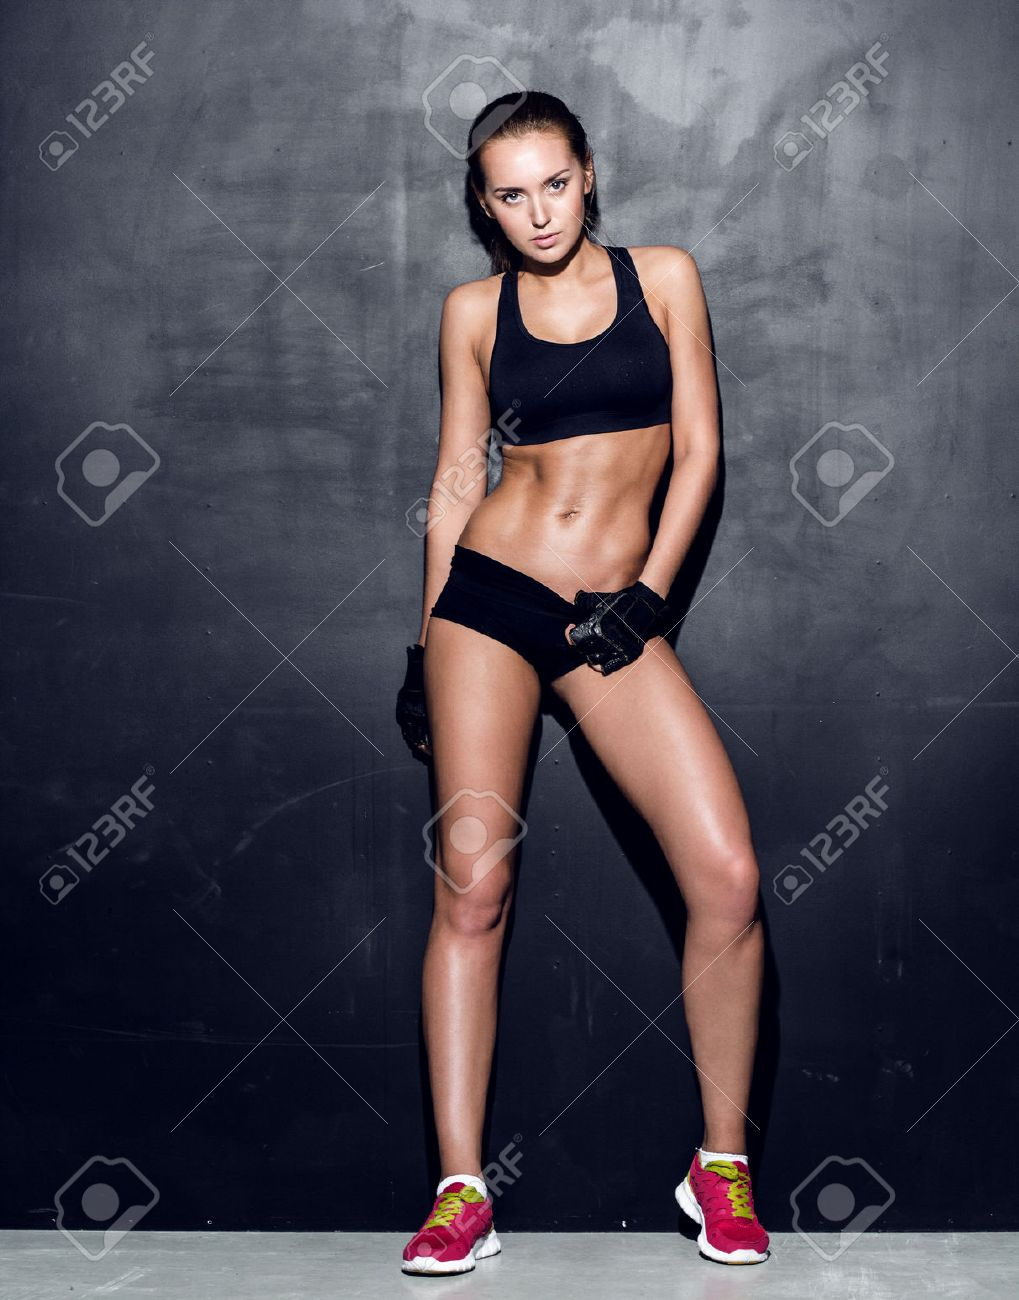 Attractive Fitness Woman Trained Female Body Lifestyle Portrait